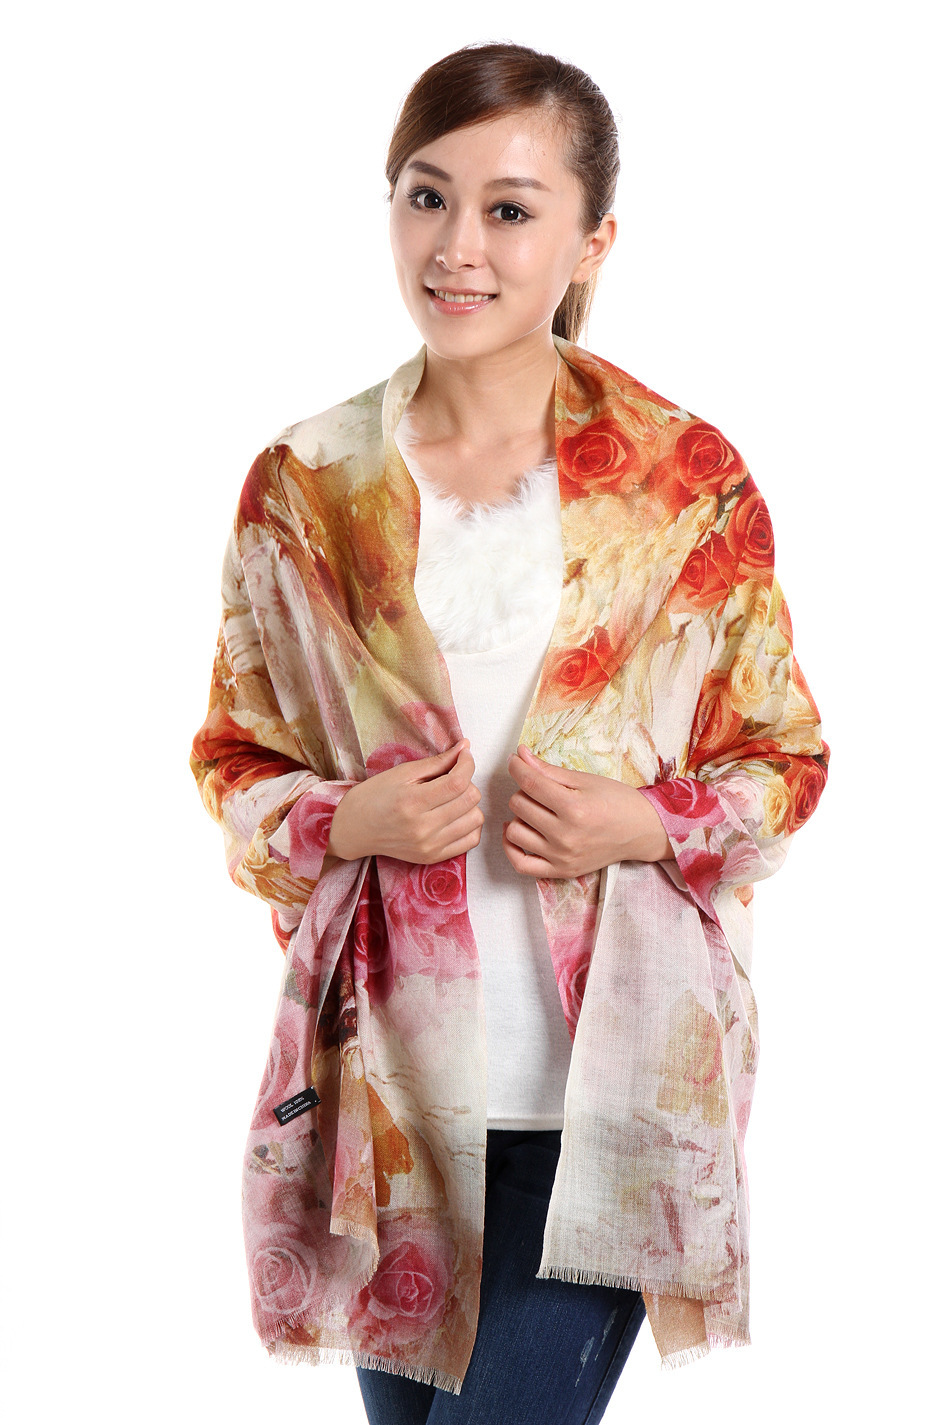 Women's Scarves and Wraps. A well-chosen scarf can turn a subdued outfit into one that's bold and eye-catching. Whether you're on the hunt for a pretty or sophisticated silk scarf, a warm wrap or pashmina, or are in need of a cozy winter scarf or neck gaiter, Amazon's selection will surely satisfy.